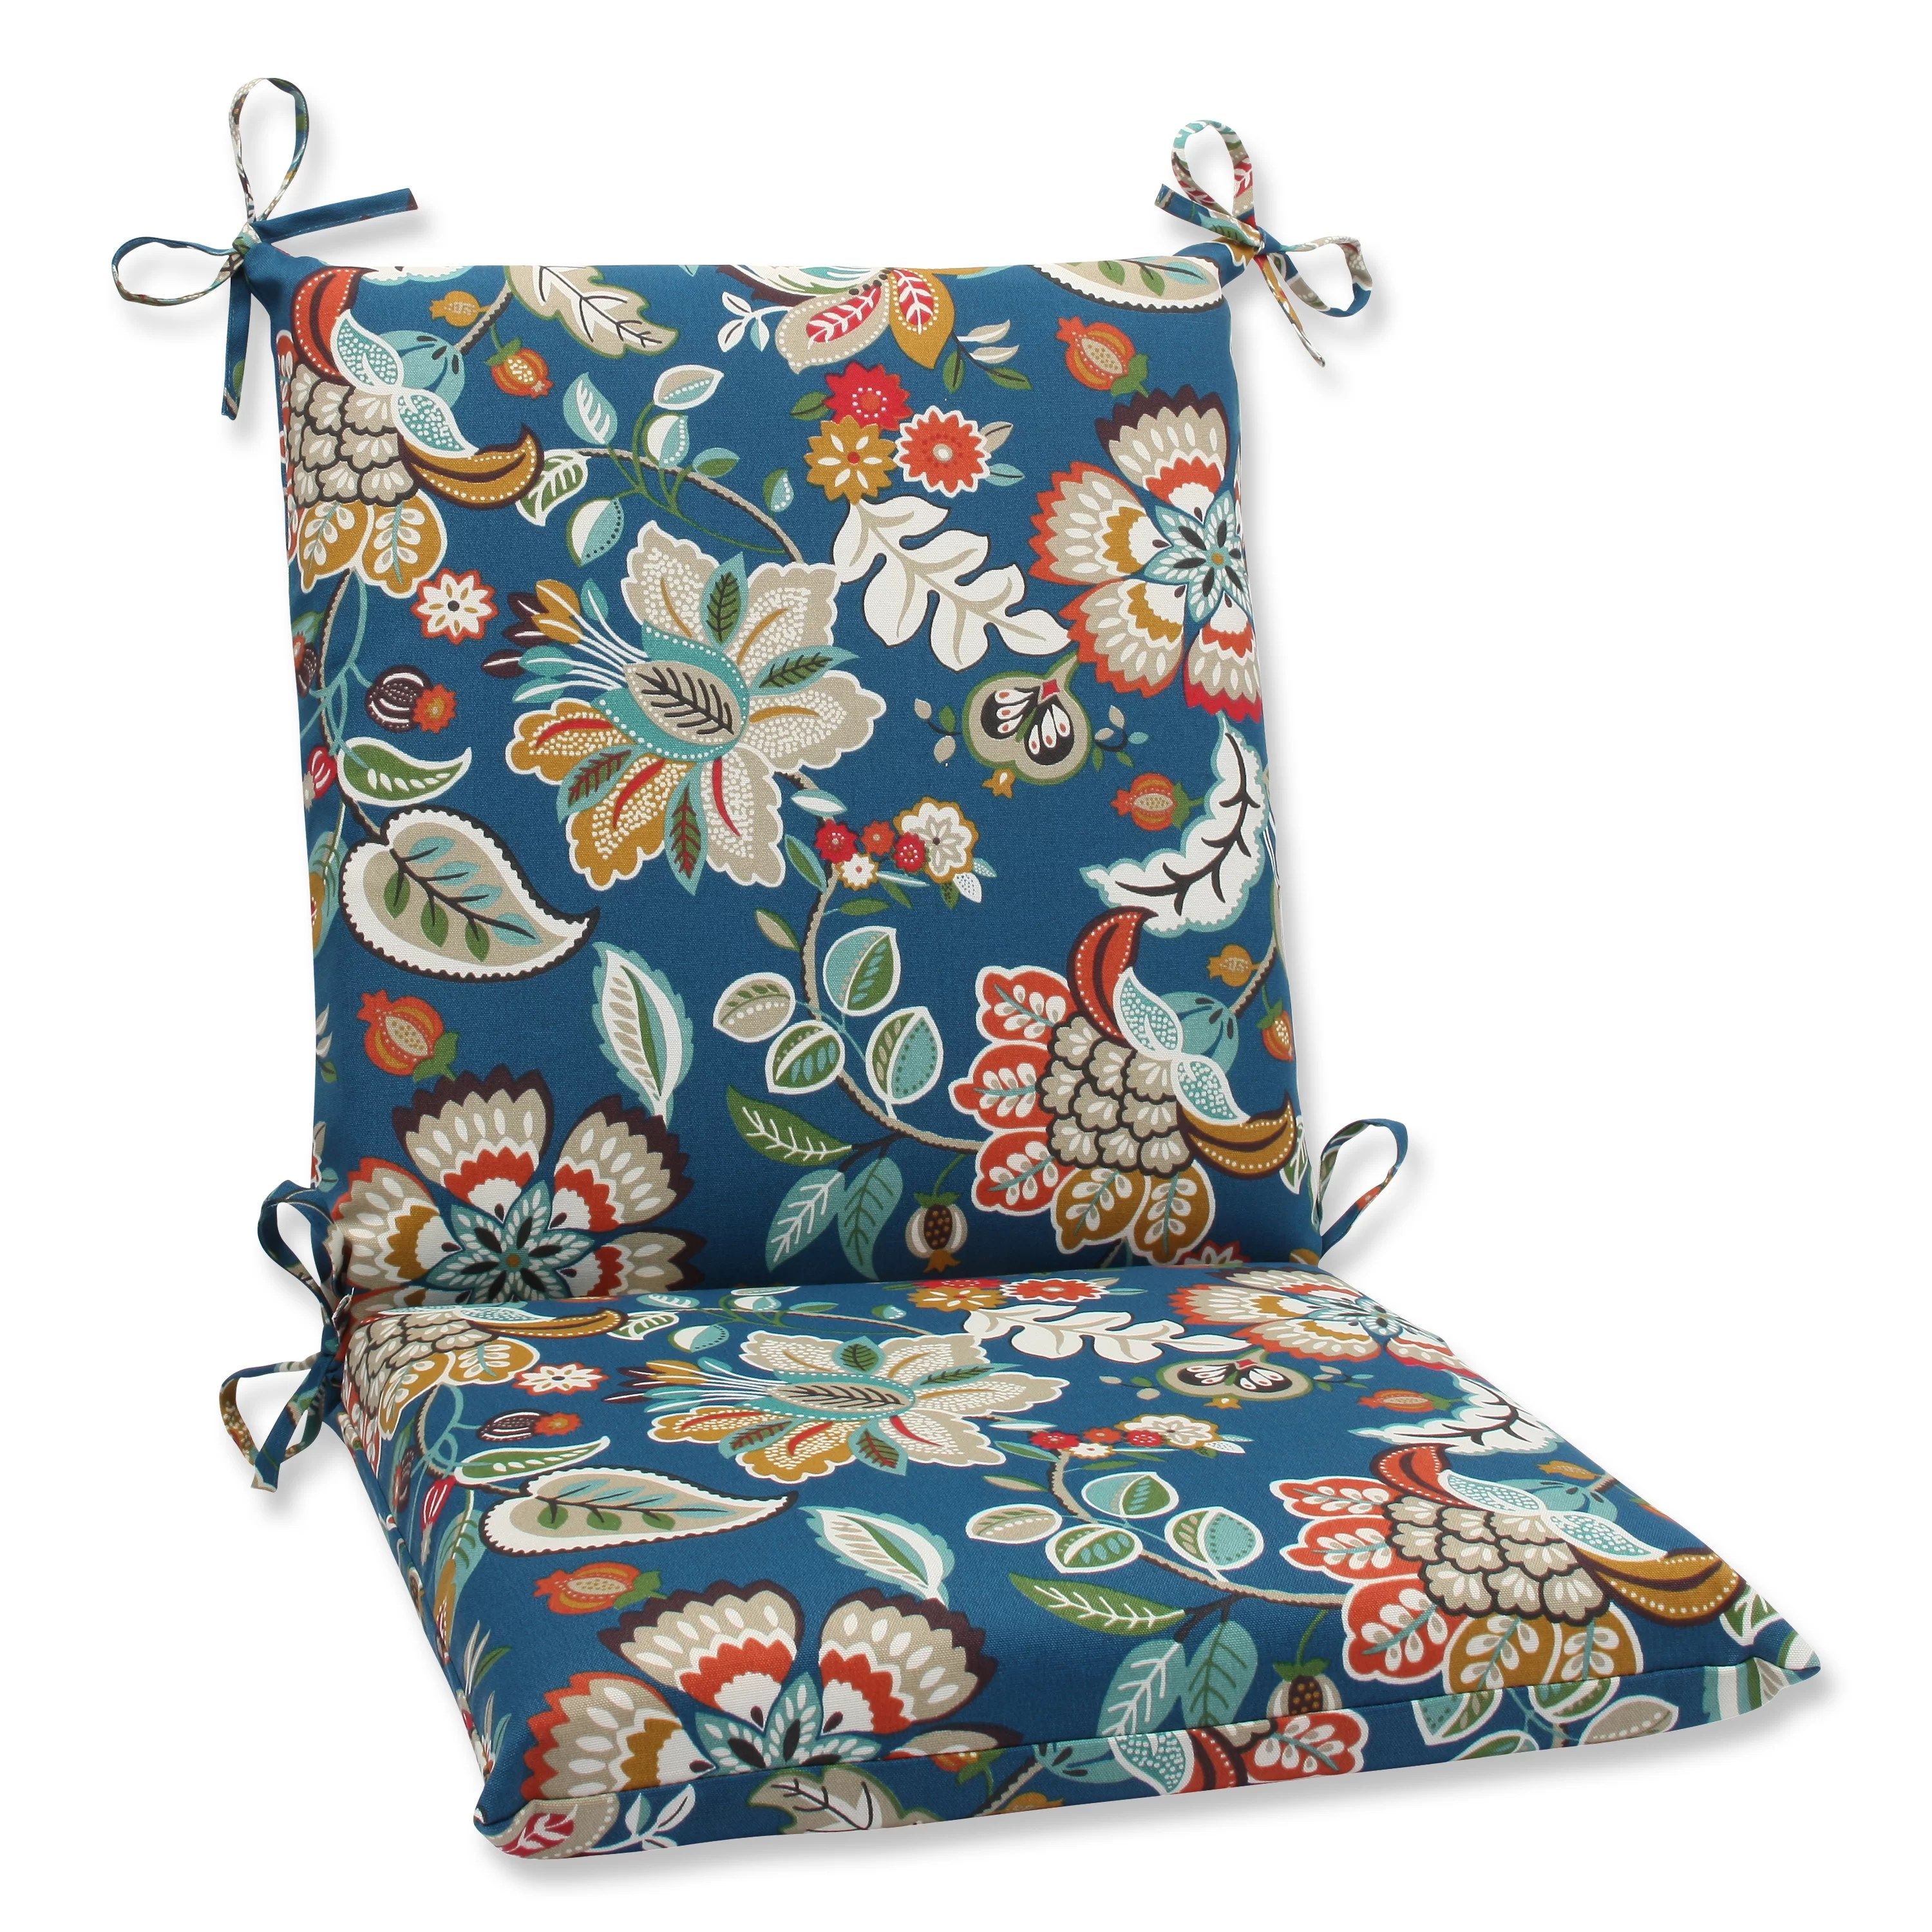 Outdoor Lounge Chair Cushions Pillow Perfect Telfair Peacock Outdoor Lounge Chair